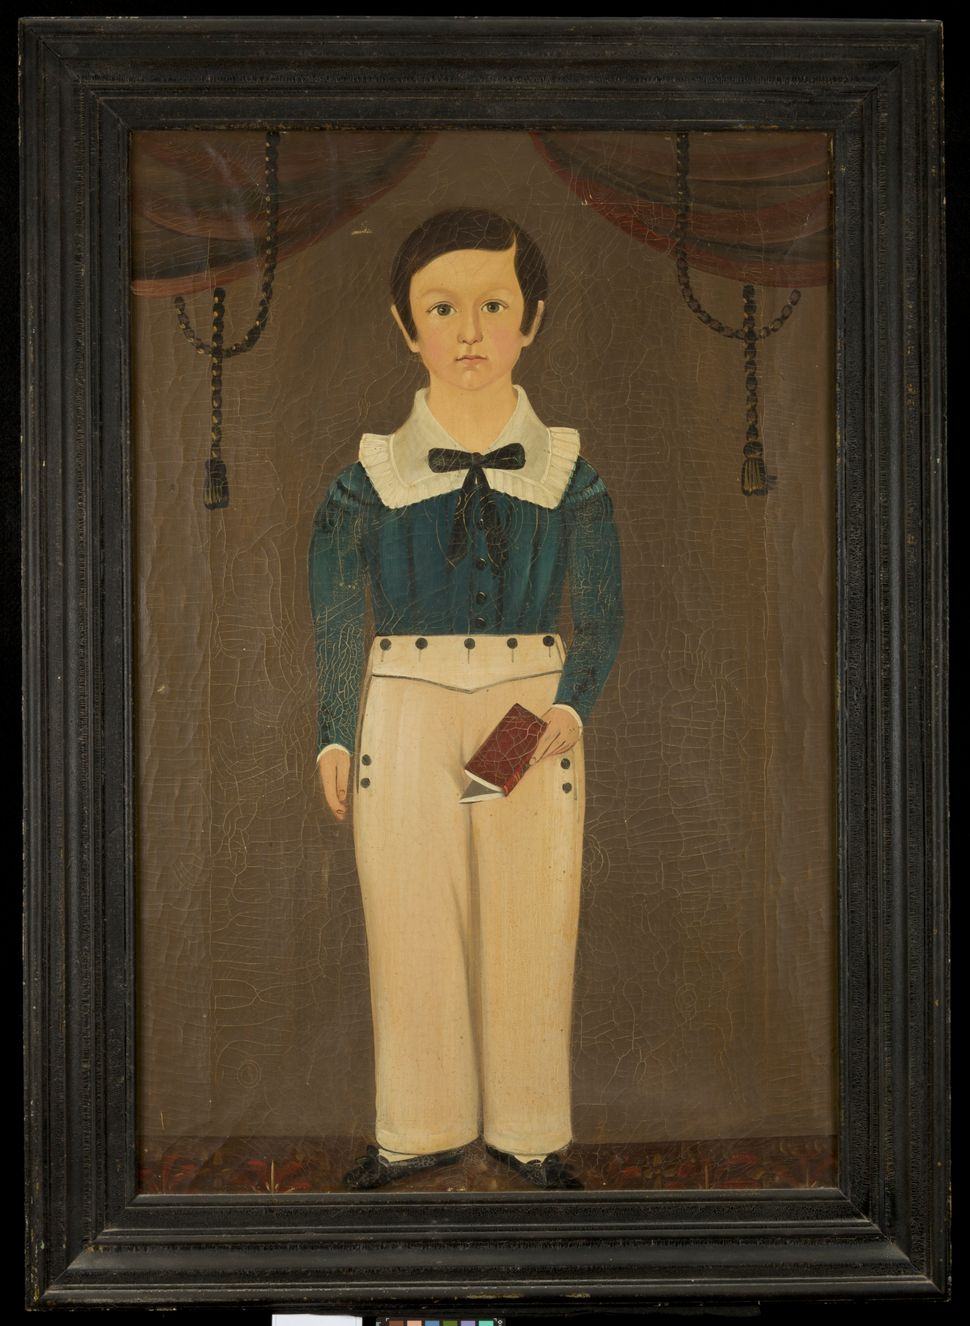 Standing Boy with Book, about 1845 attributed to Sturtevant J. Hamblen Image: Courtesy of the Worcester Art Museum